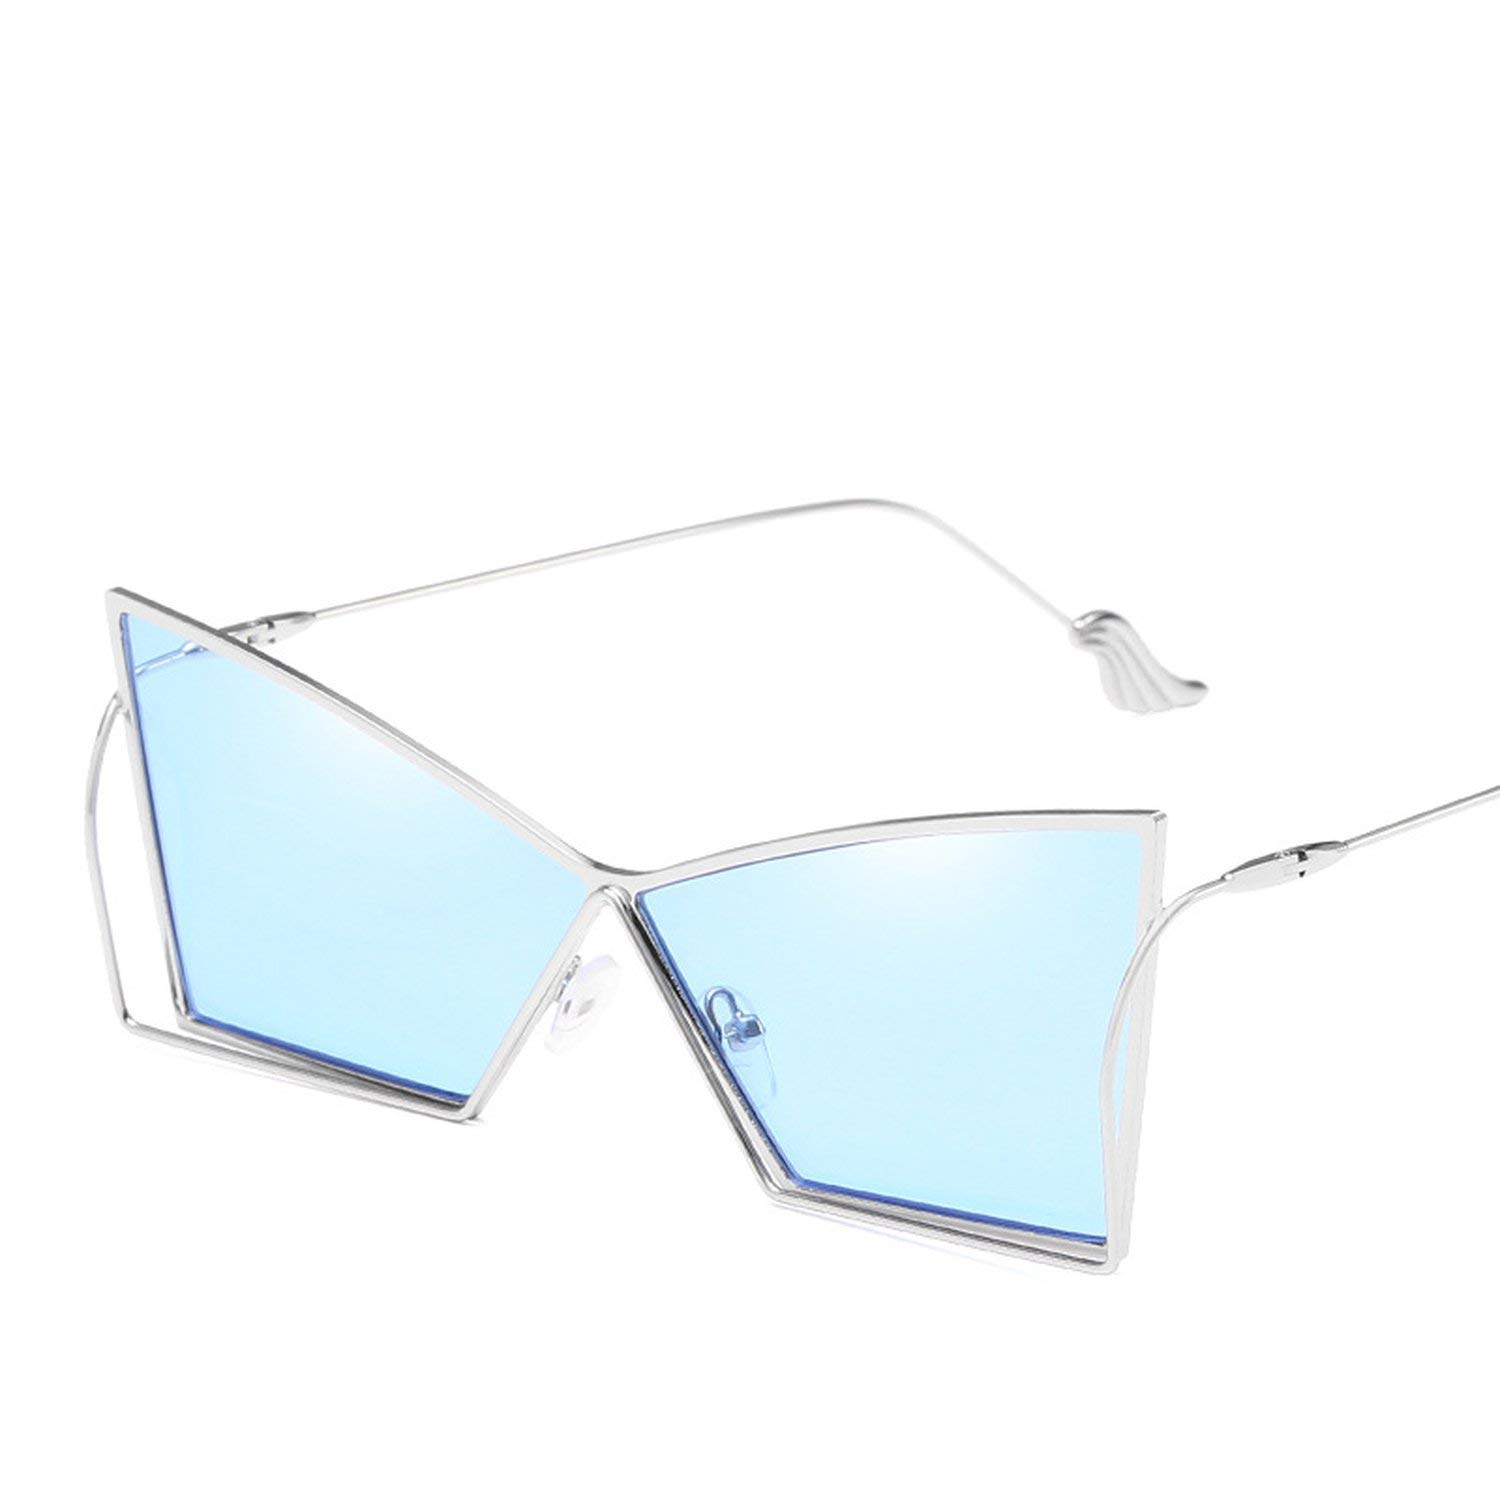 6fcccbc00fd Get Quotations · New irregular quadrilateral frame sunglasses mirror unisex  sunglasses